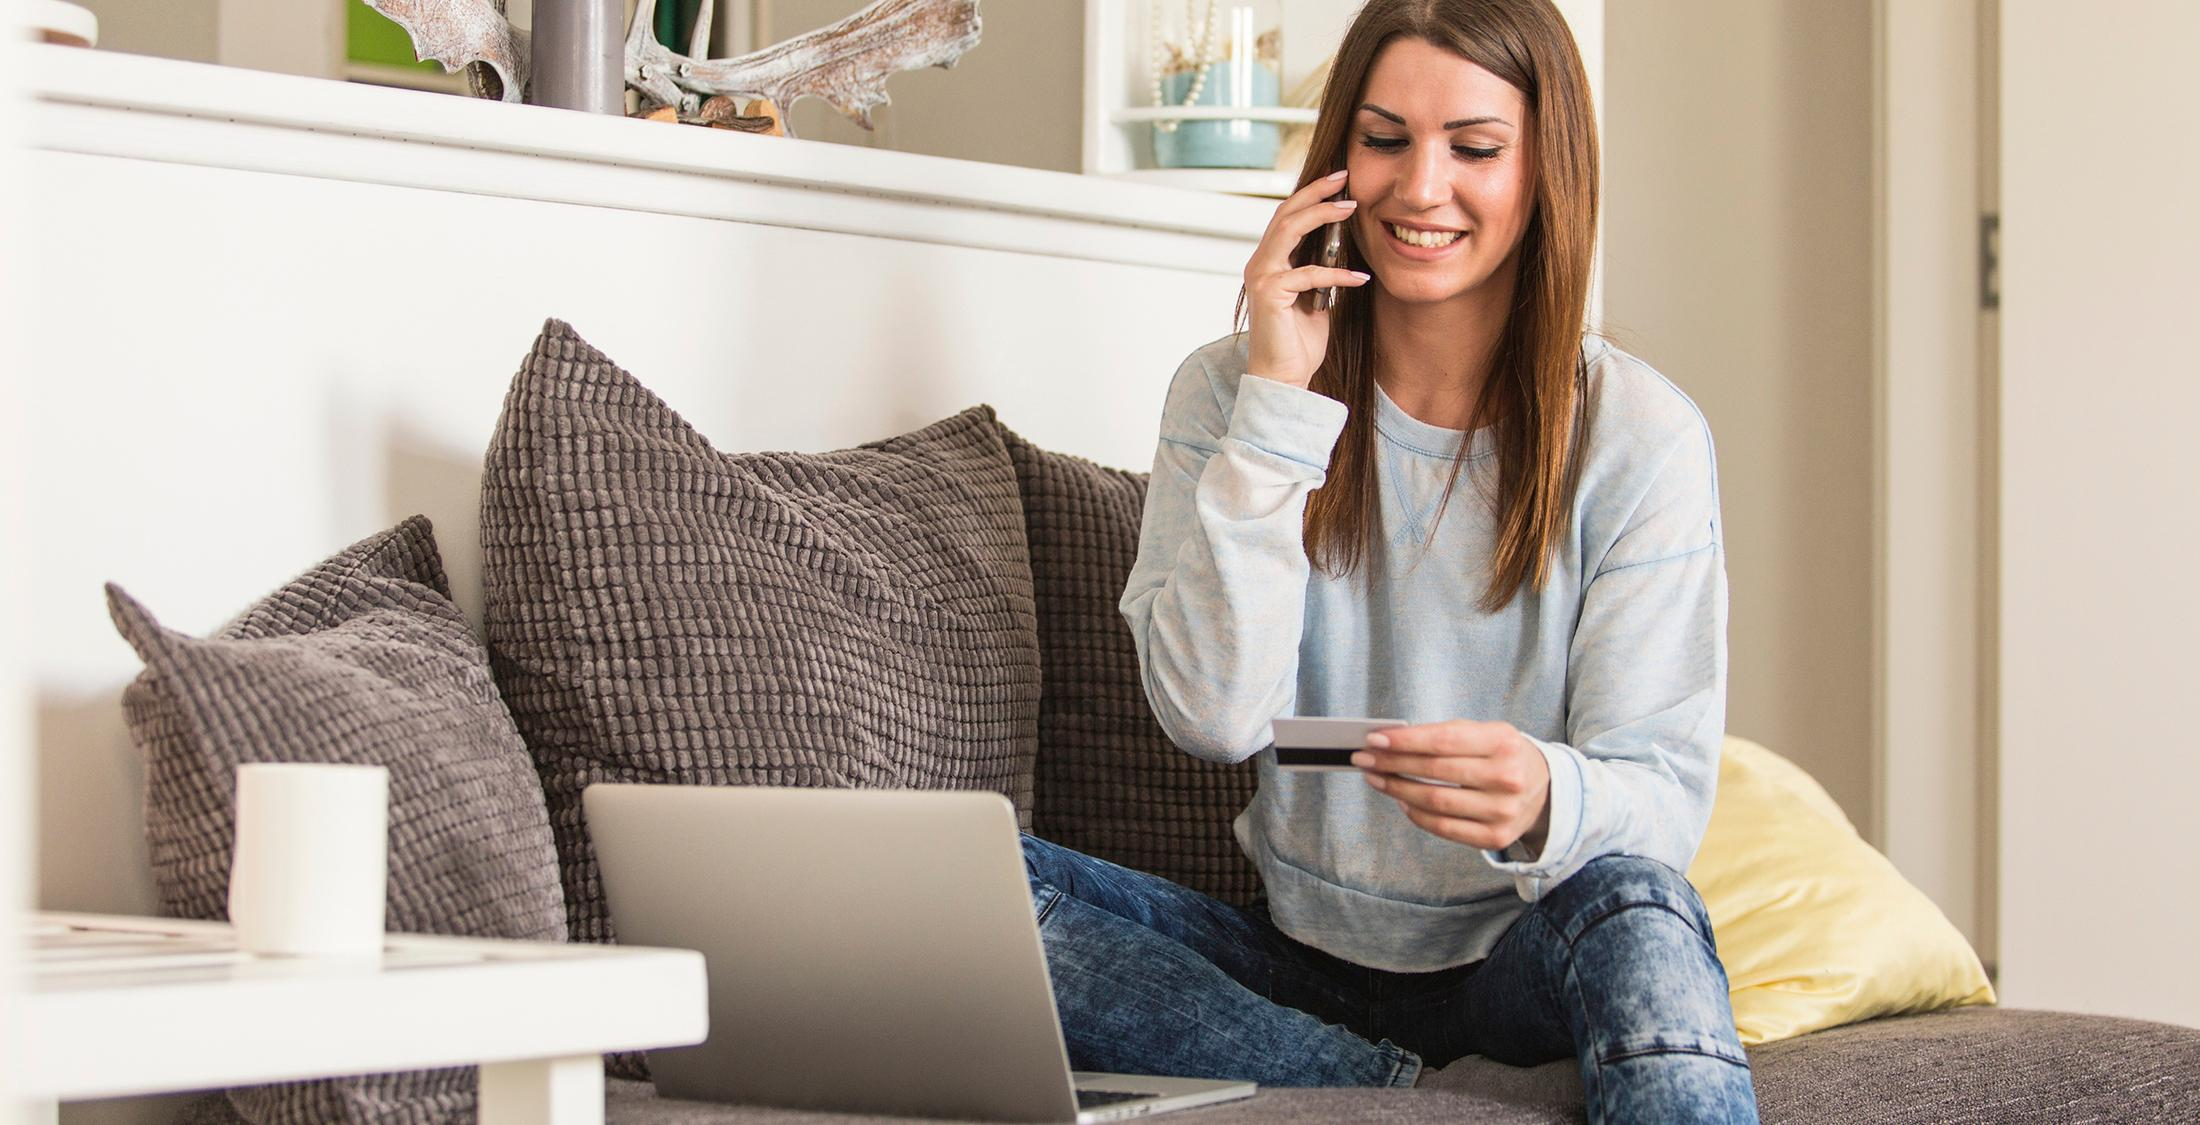 Young woman holding credit card and using laptop at home